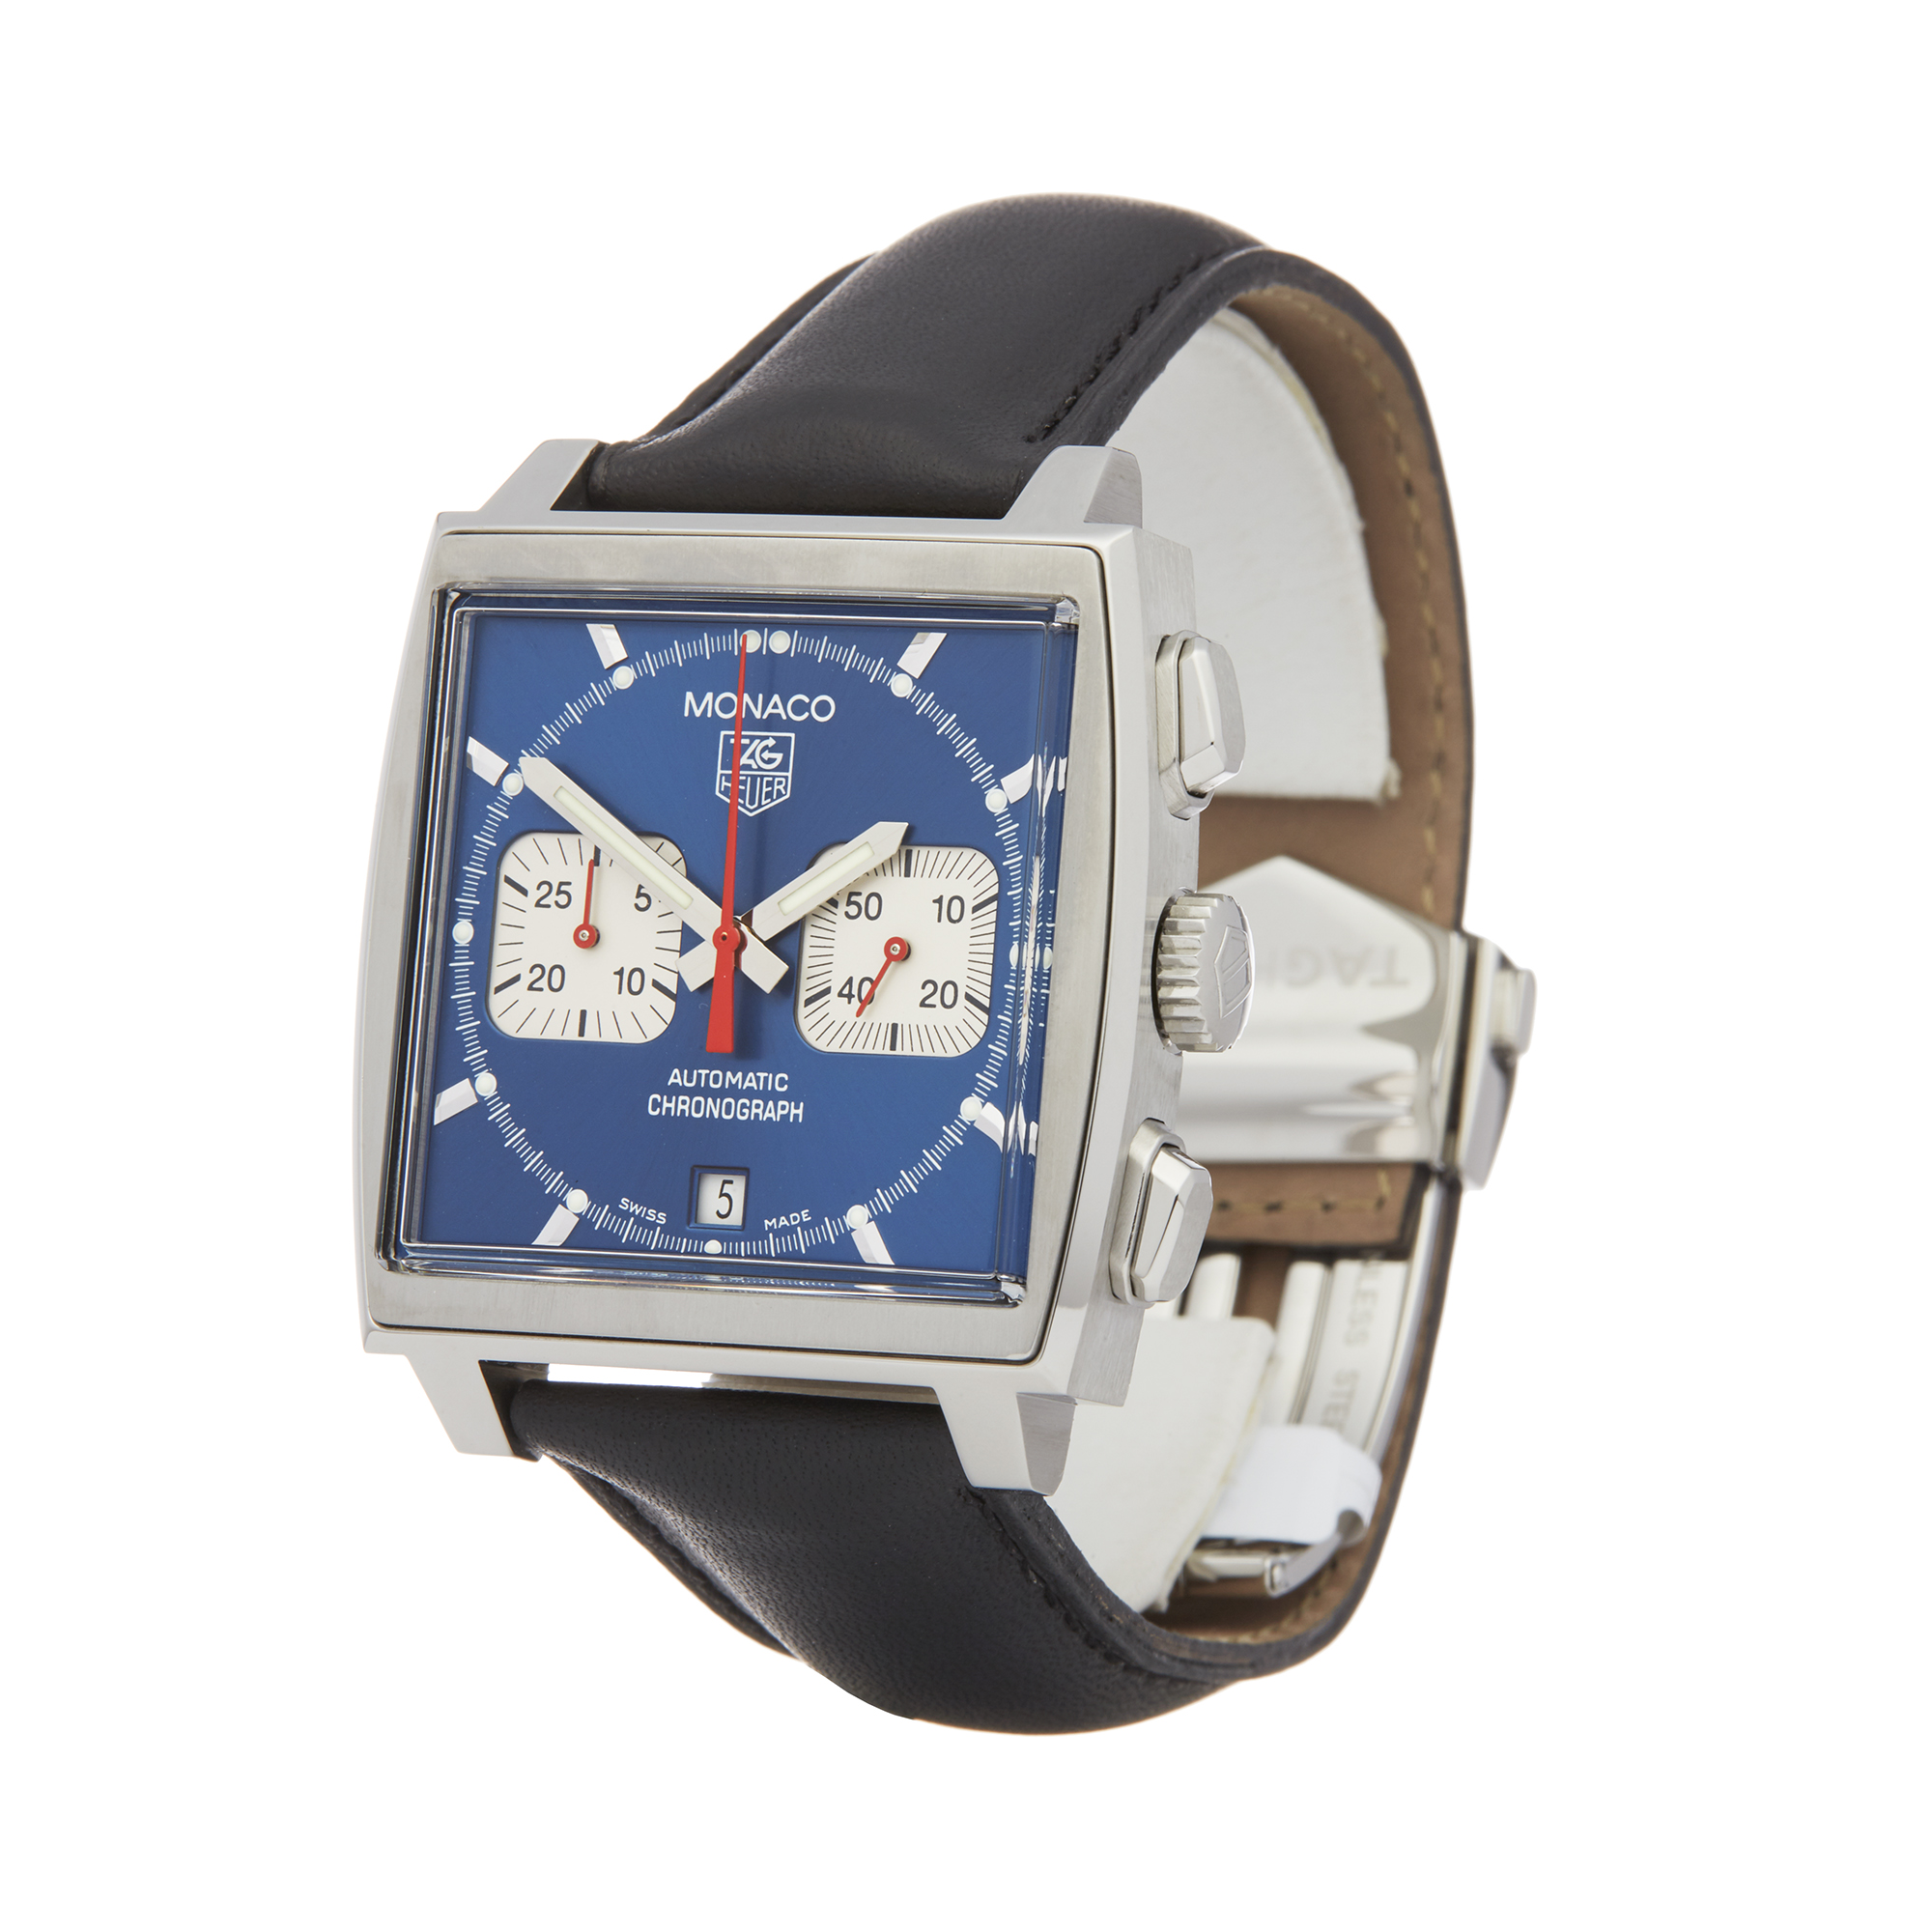 Tag Heuer Monaco CW2113-0 Men Stainless Steel Chronograph Watch